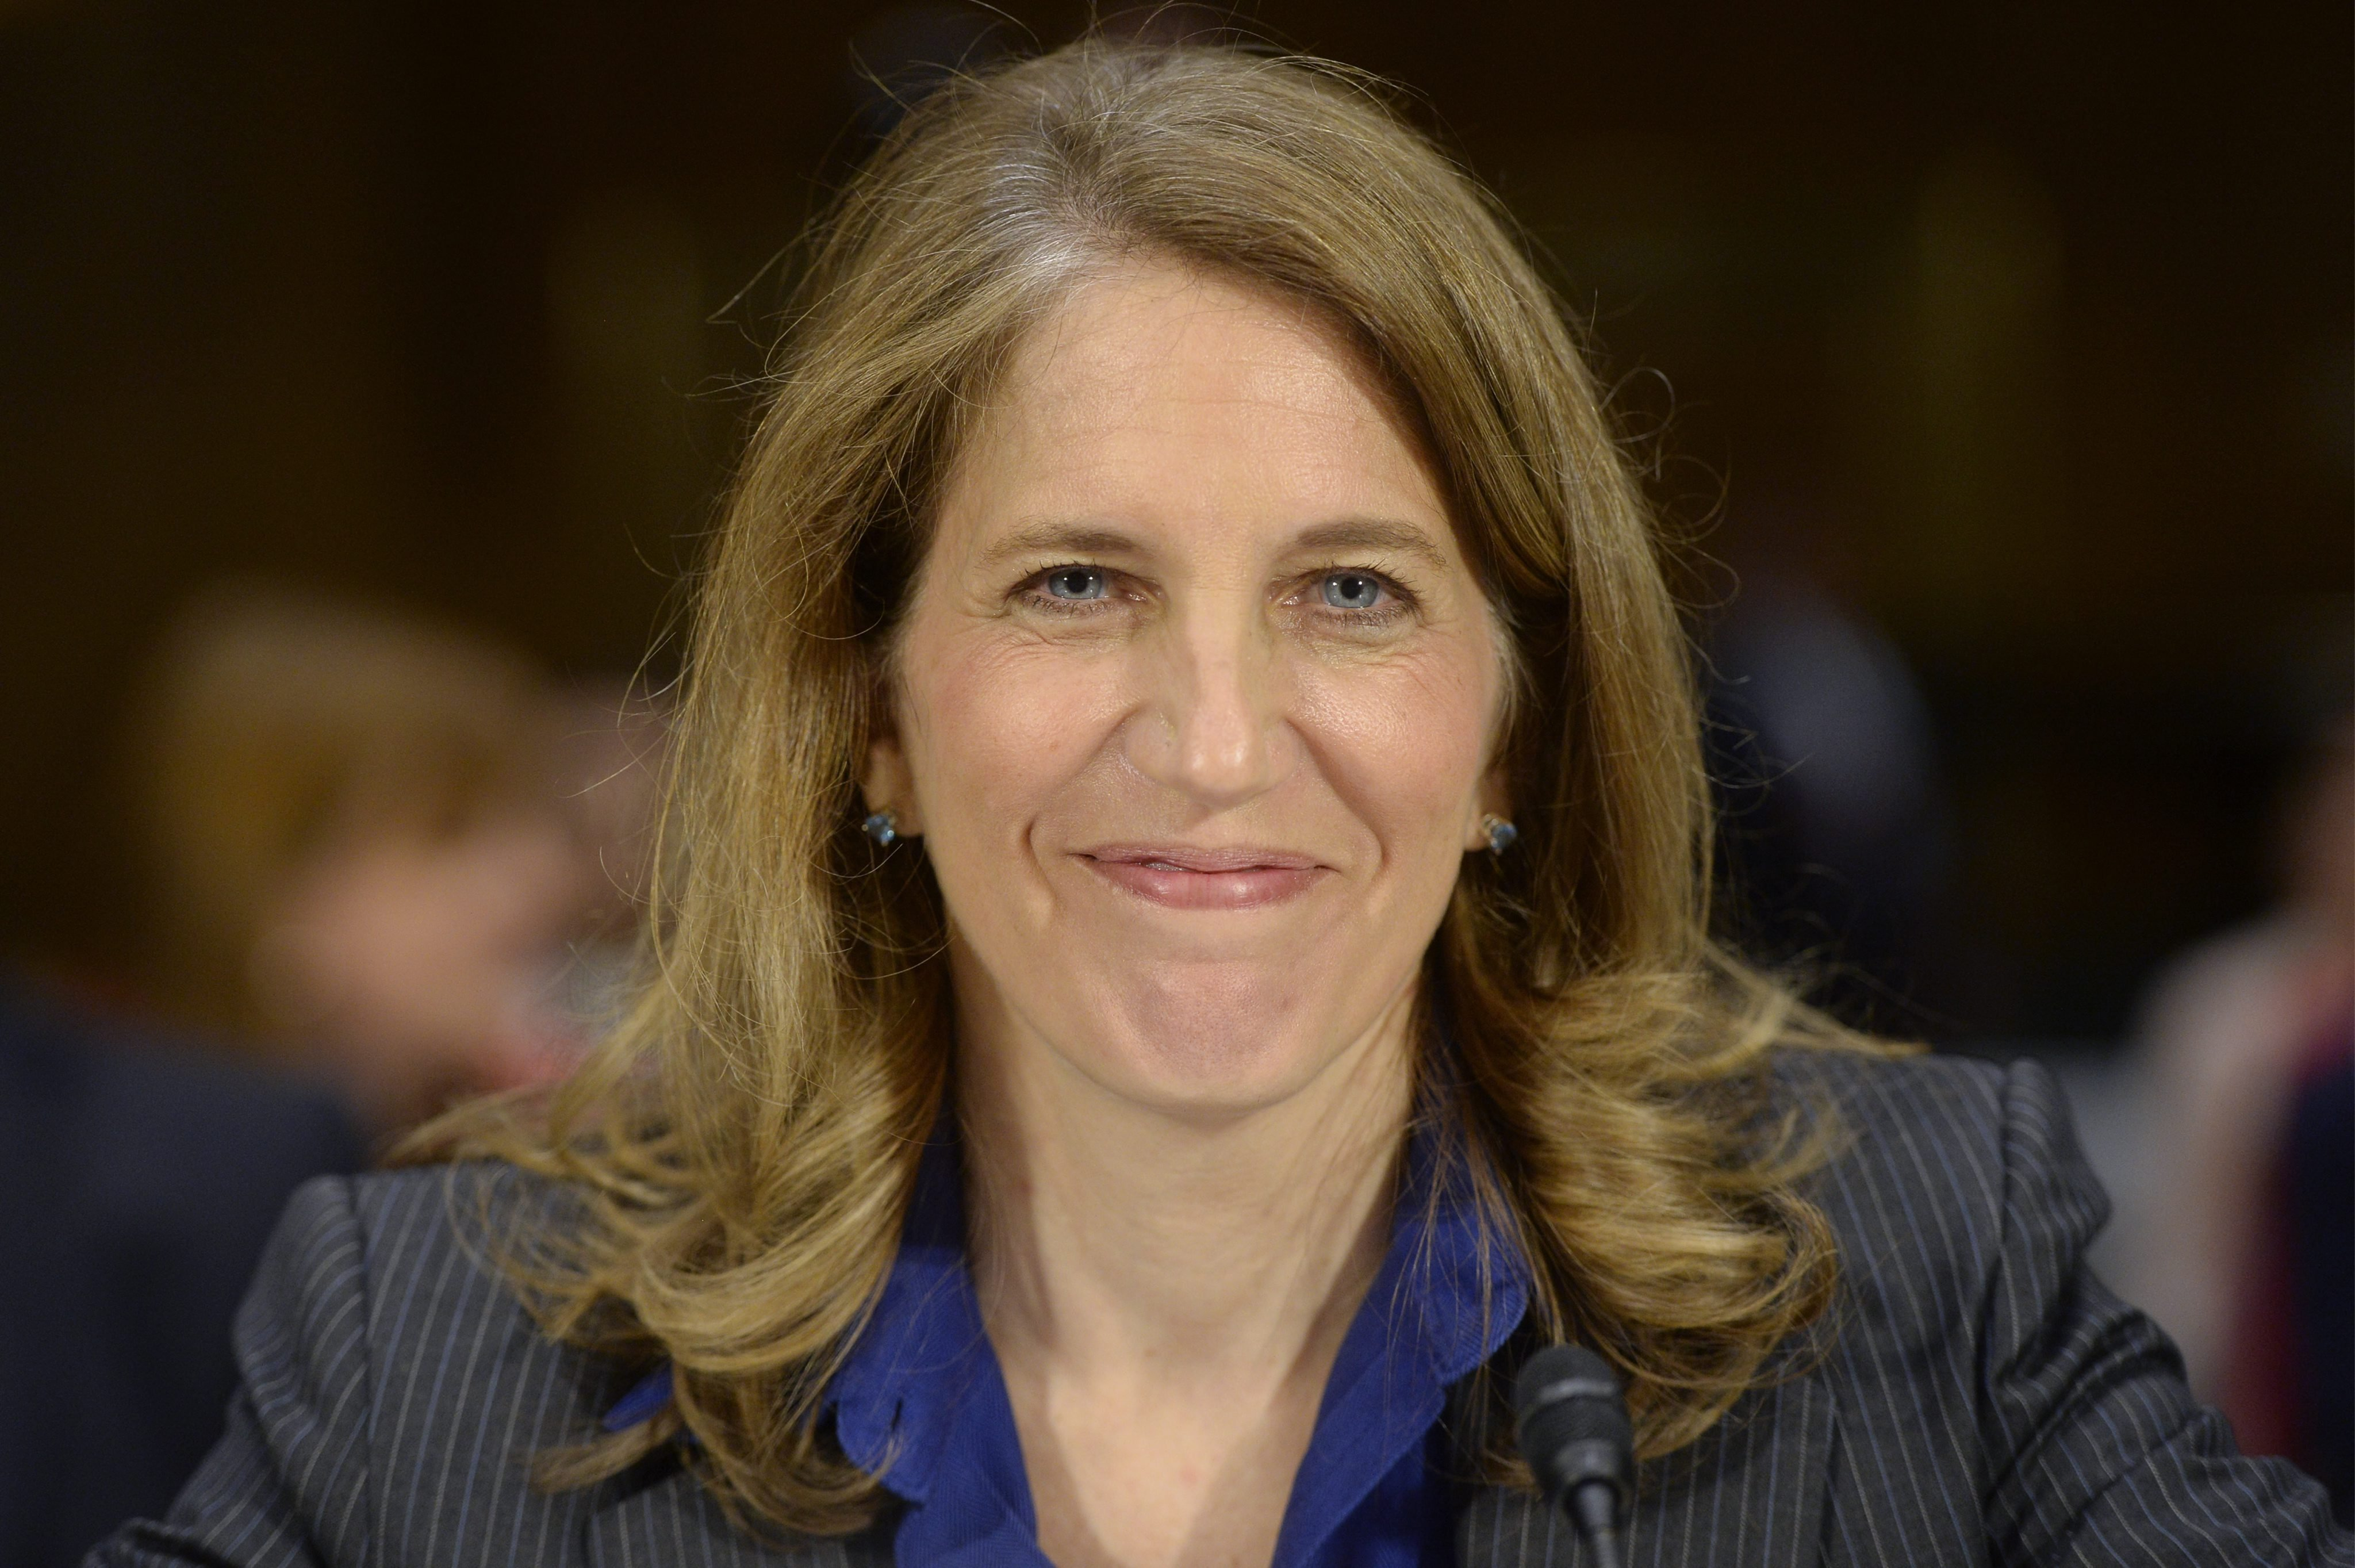 Sylvia Burwell appears before the Senate Health, Education, Labor and Pensions Committee hearing on her nomination to be secretary of the Health and Human Services Department  in Washington DC, on May 8,2014.